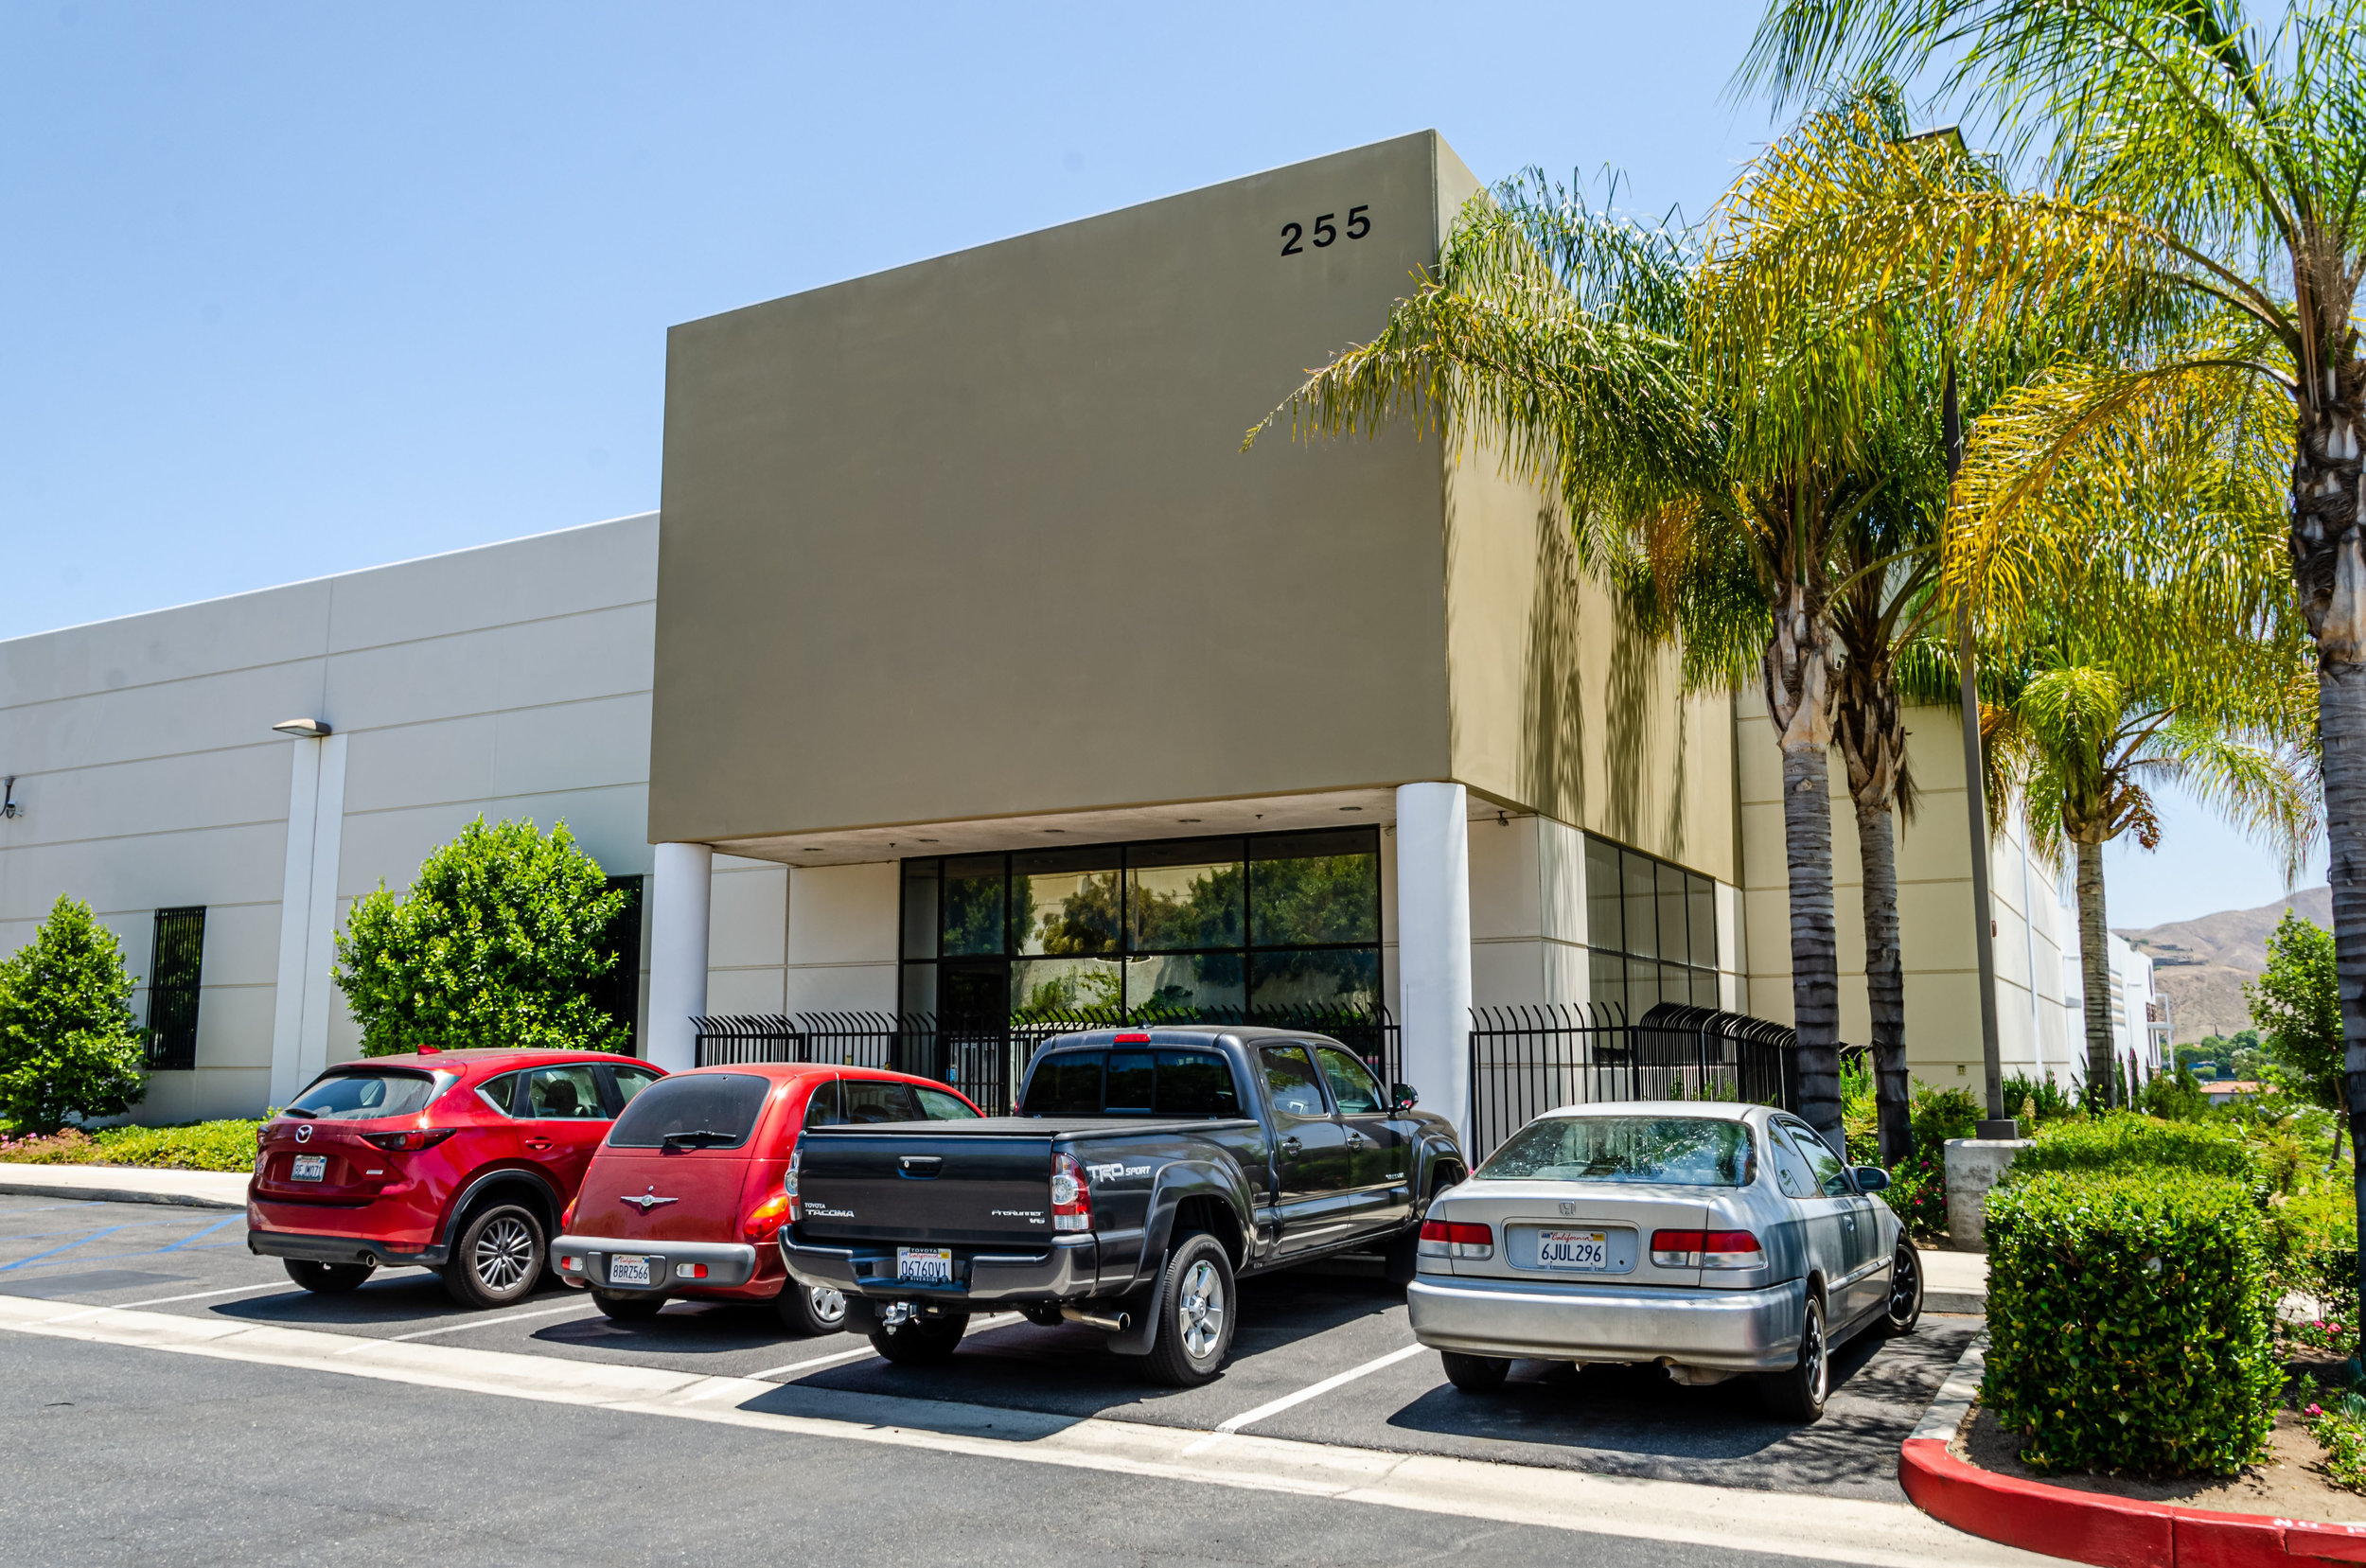 14,697 sf Industrial Investment For Sale | 255 Crouse Drive, Corona, CA 92879